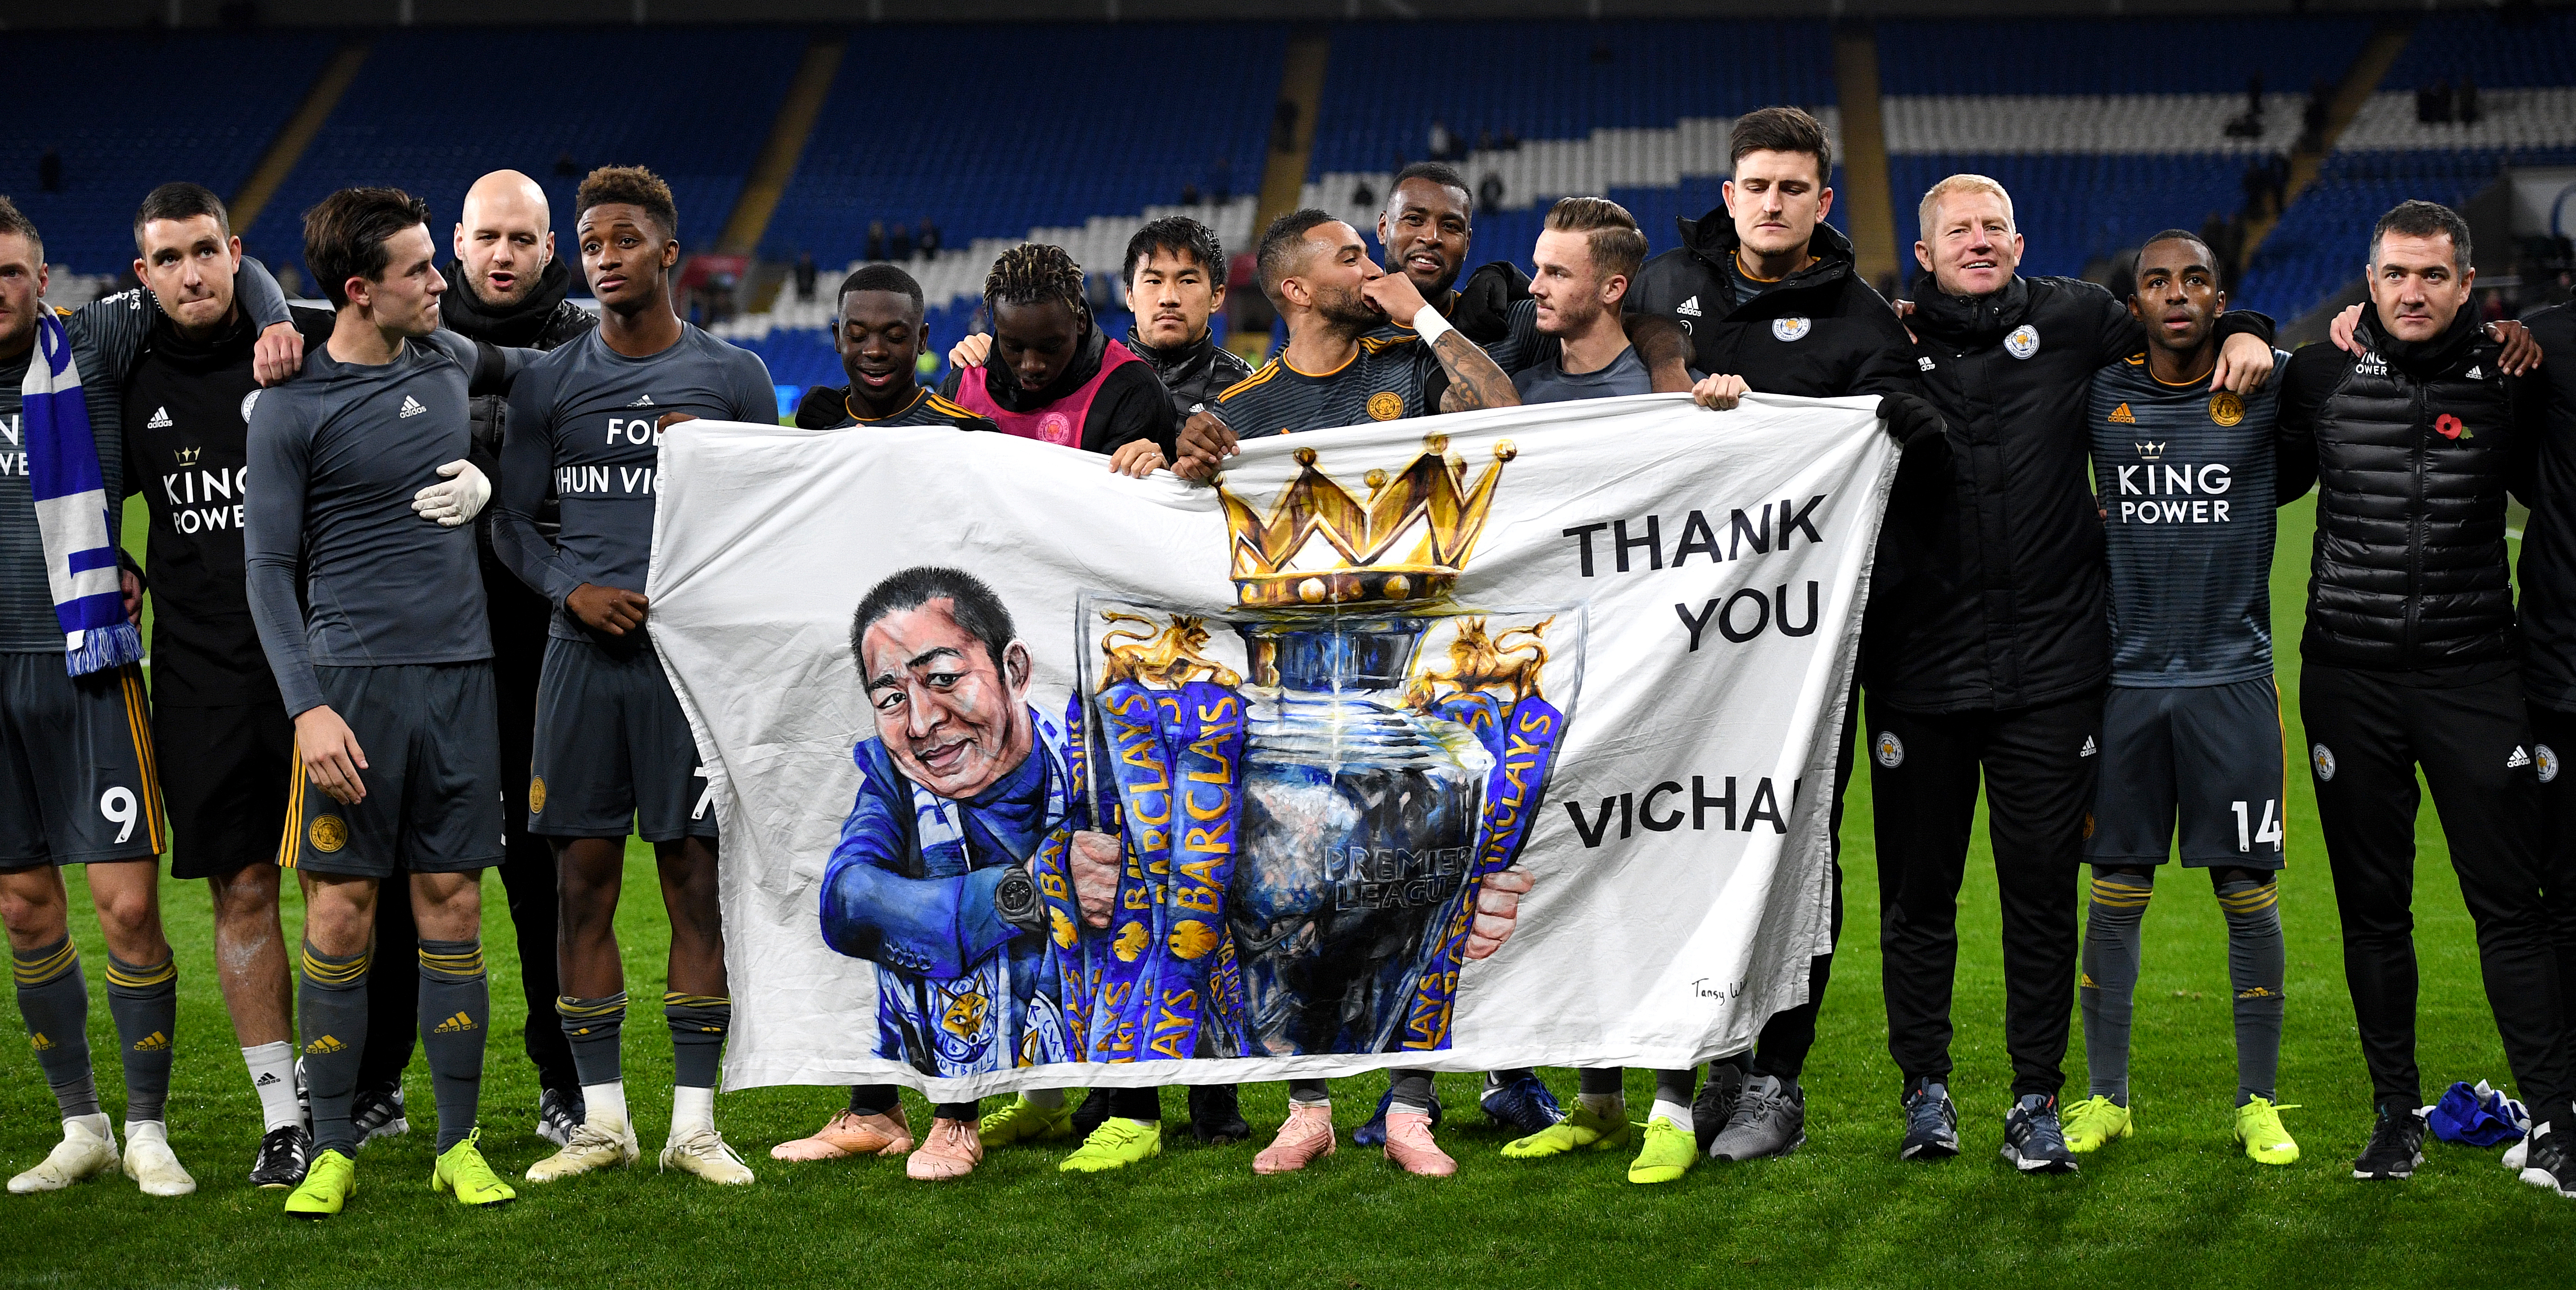 Leicester players and staff pay tribute to Vichai Srivaddhanaprabha. Image: PA Images